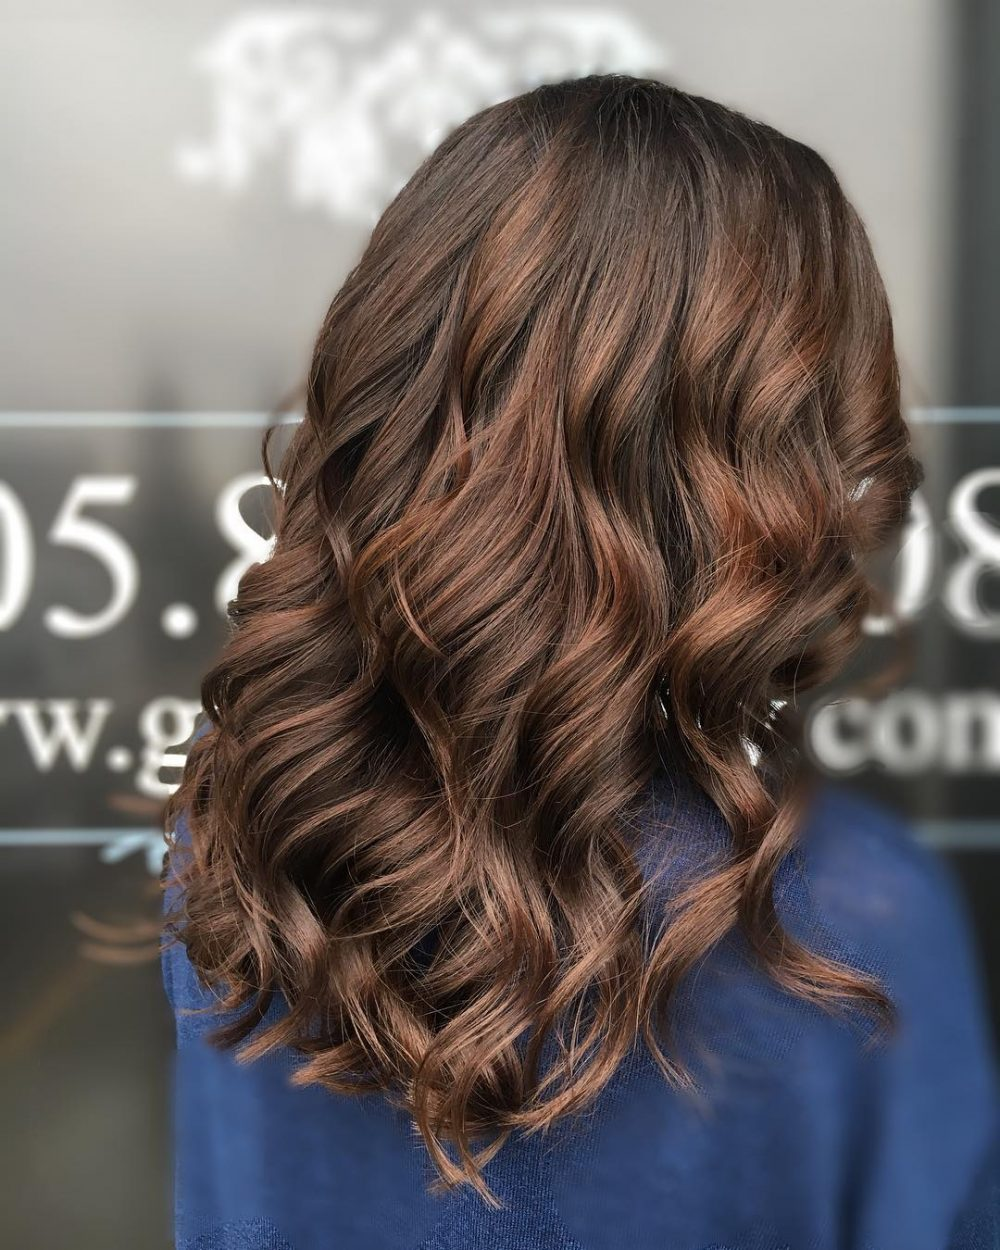 Brown Dark hair with caramel lowlights forecasting to wear for spring in 2019